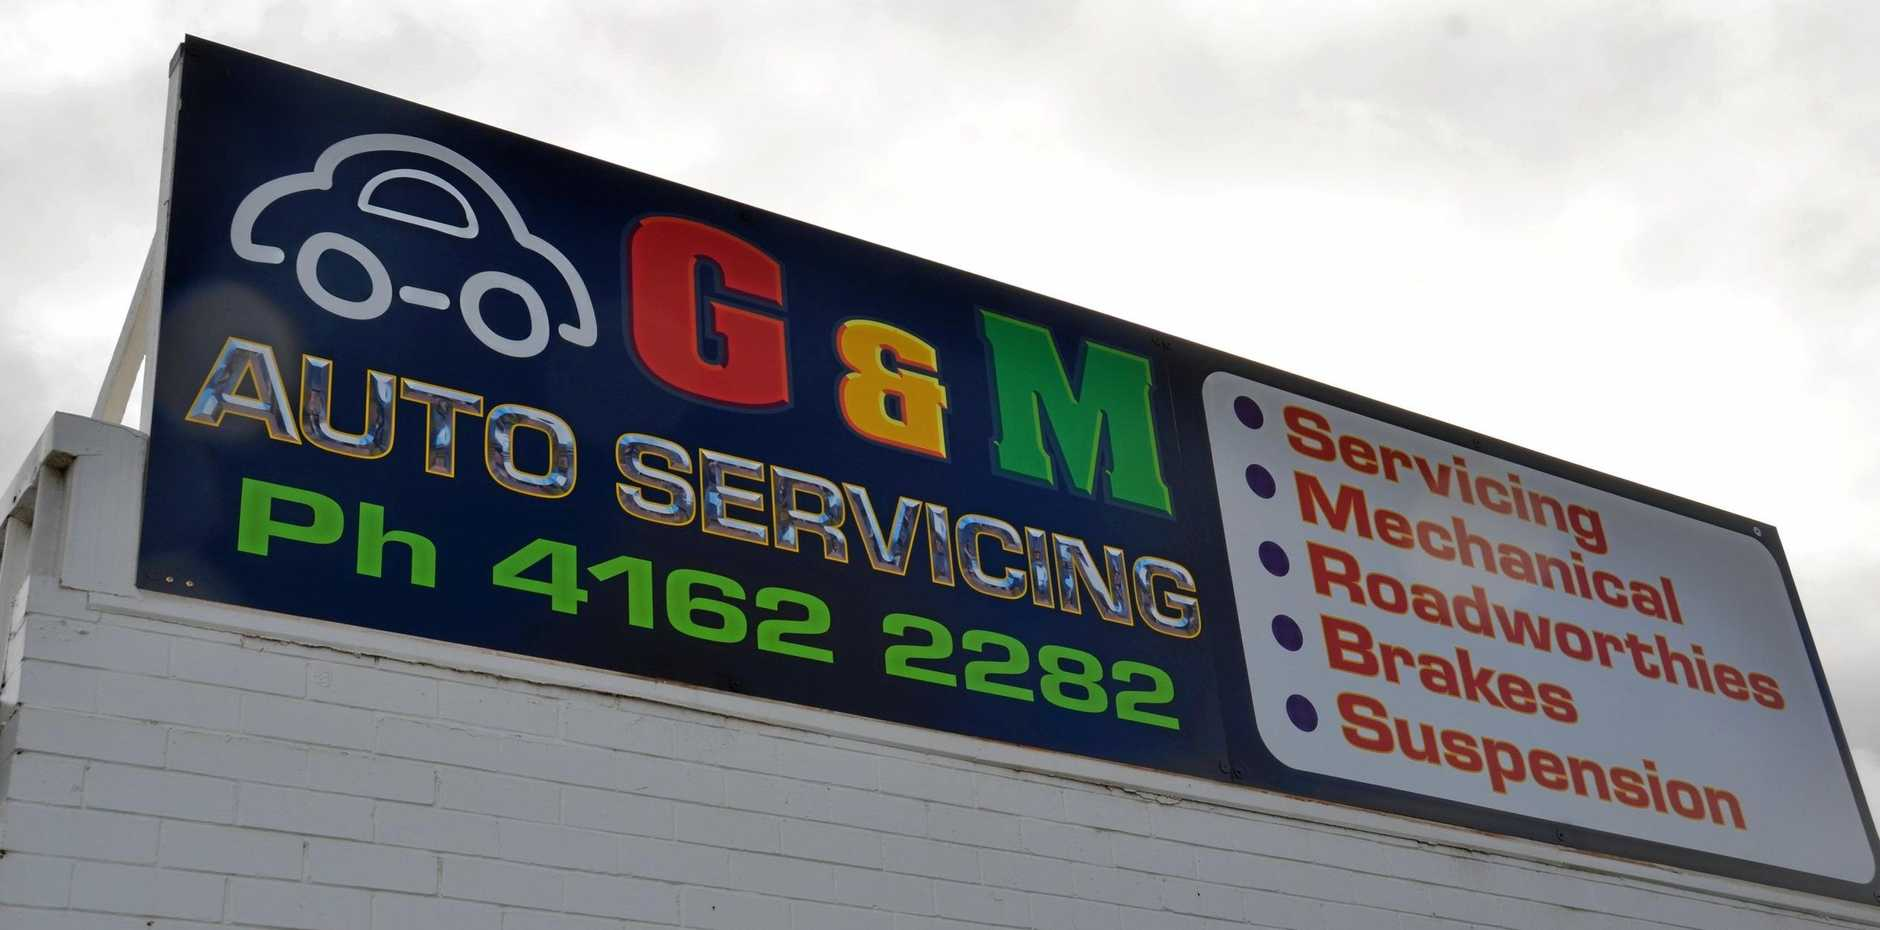 G&M Auto Servicing is the place to go for your next service.